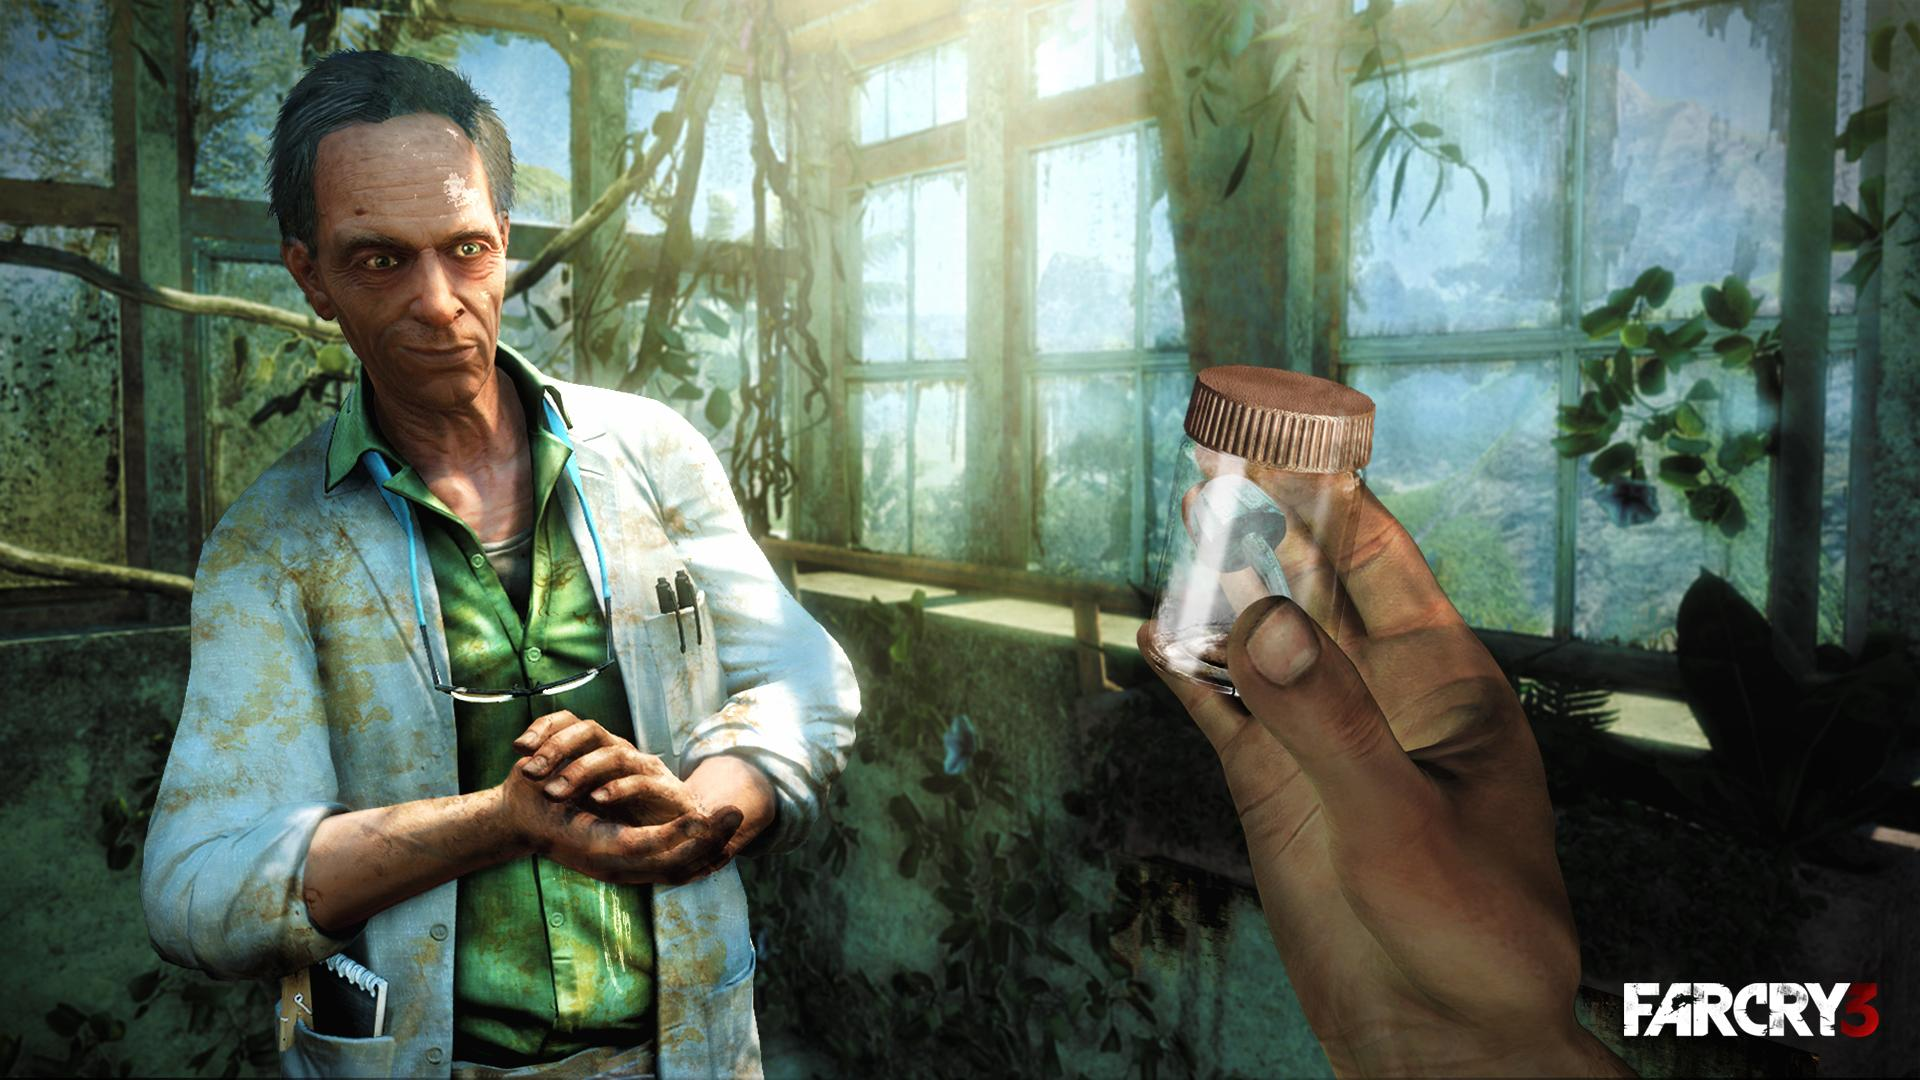 Tabooed Subjects in Far Cry 3